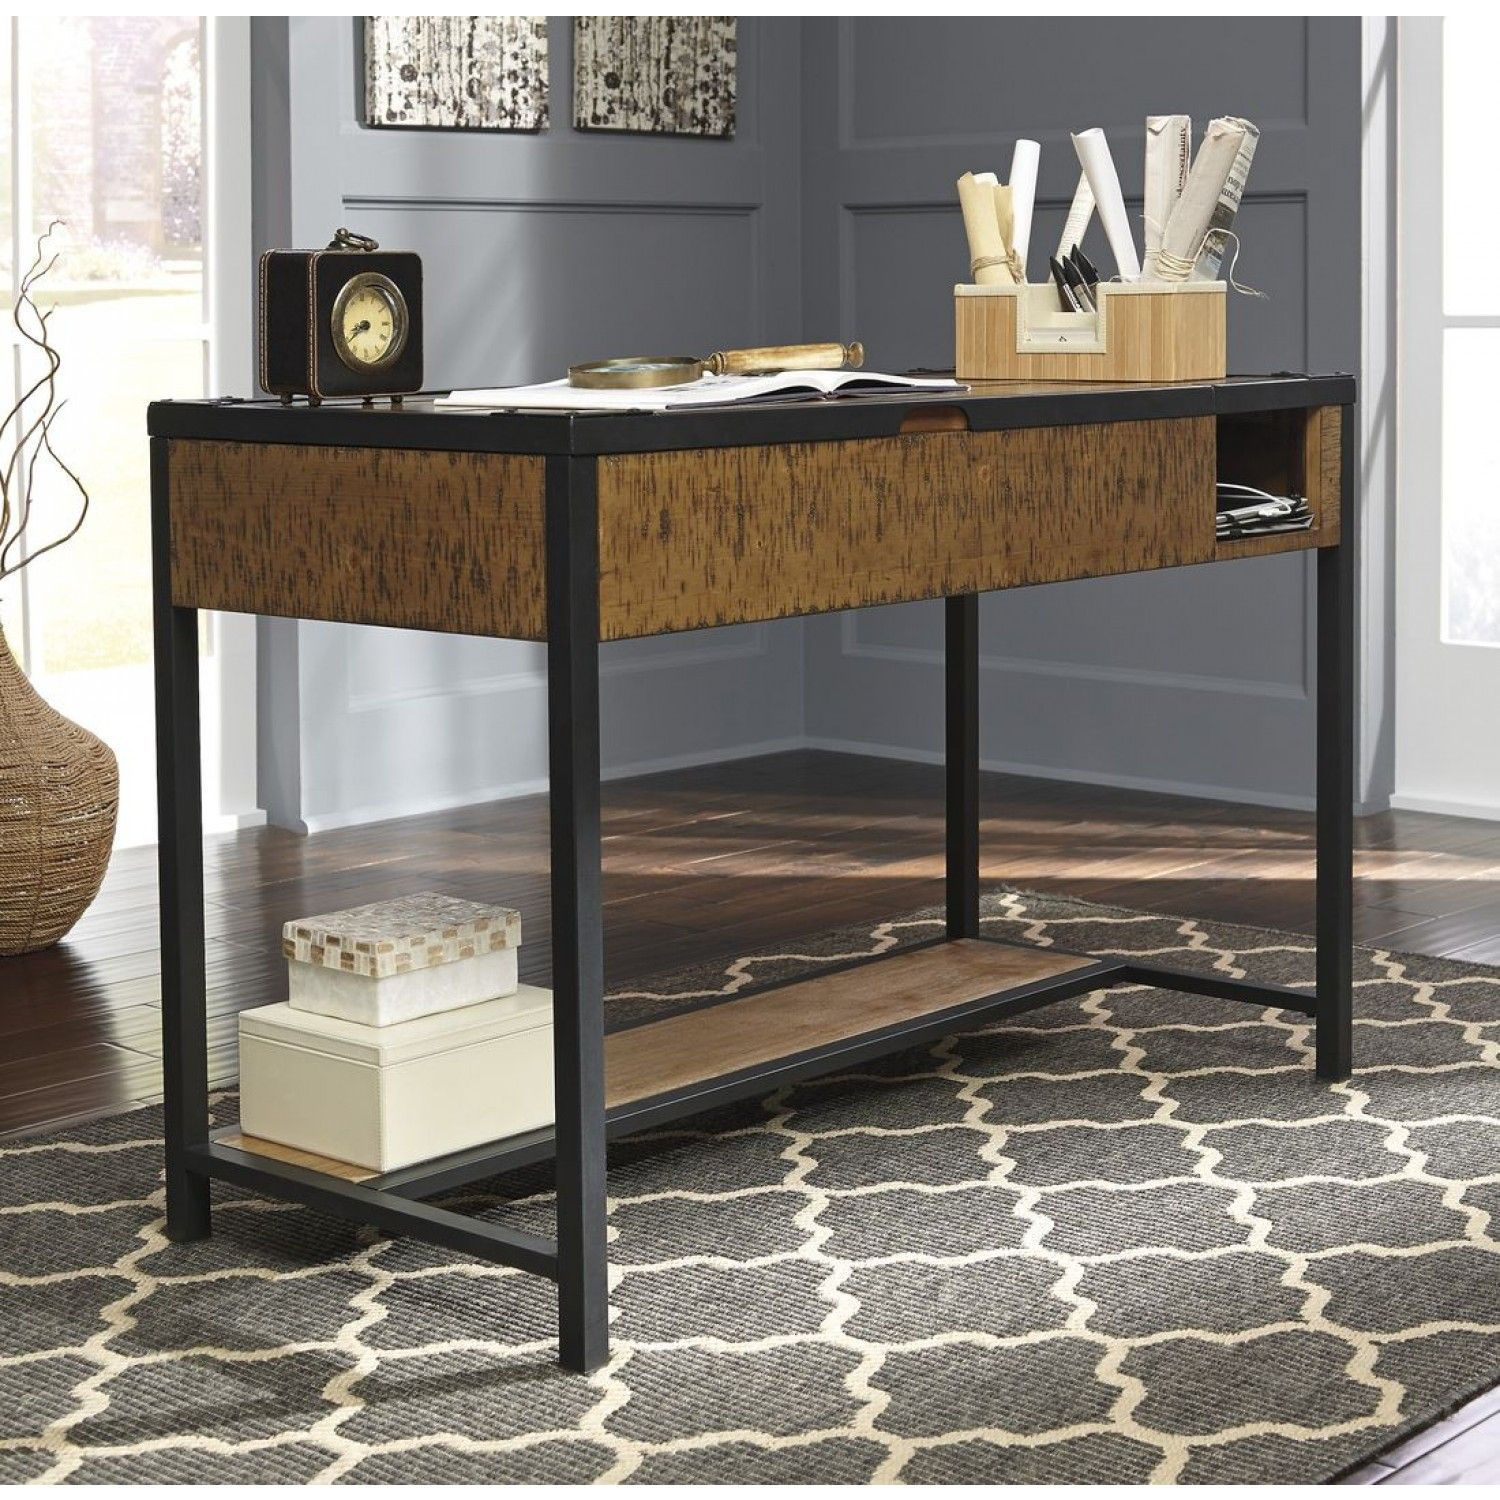 Ashley Furniture Kalean Home fice Lift Top Desk in Two Tone